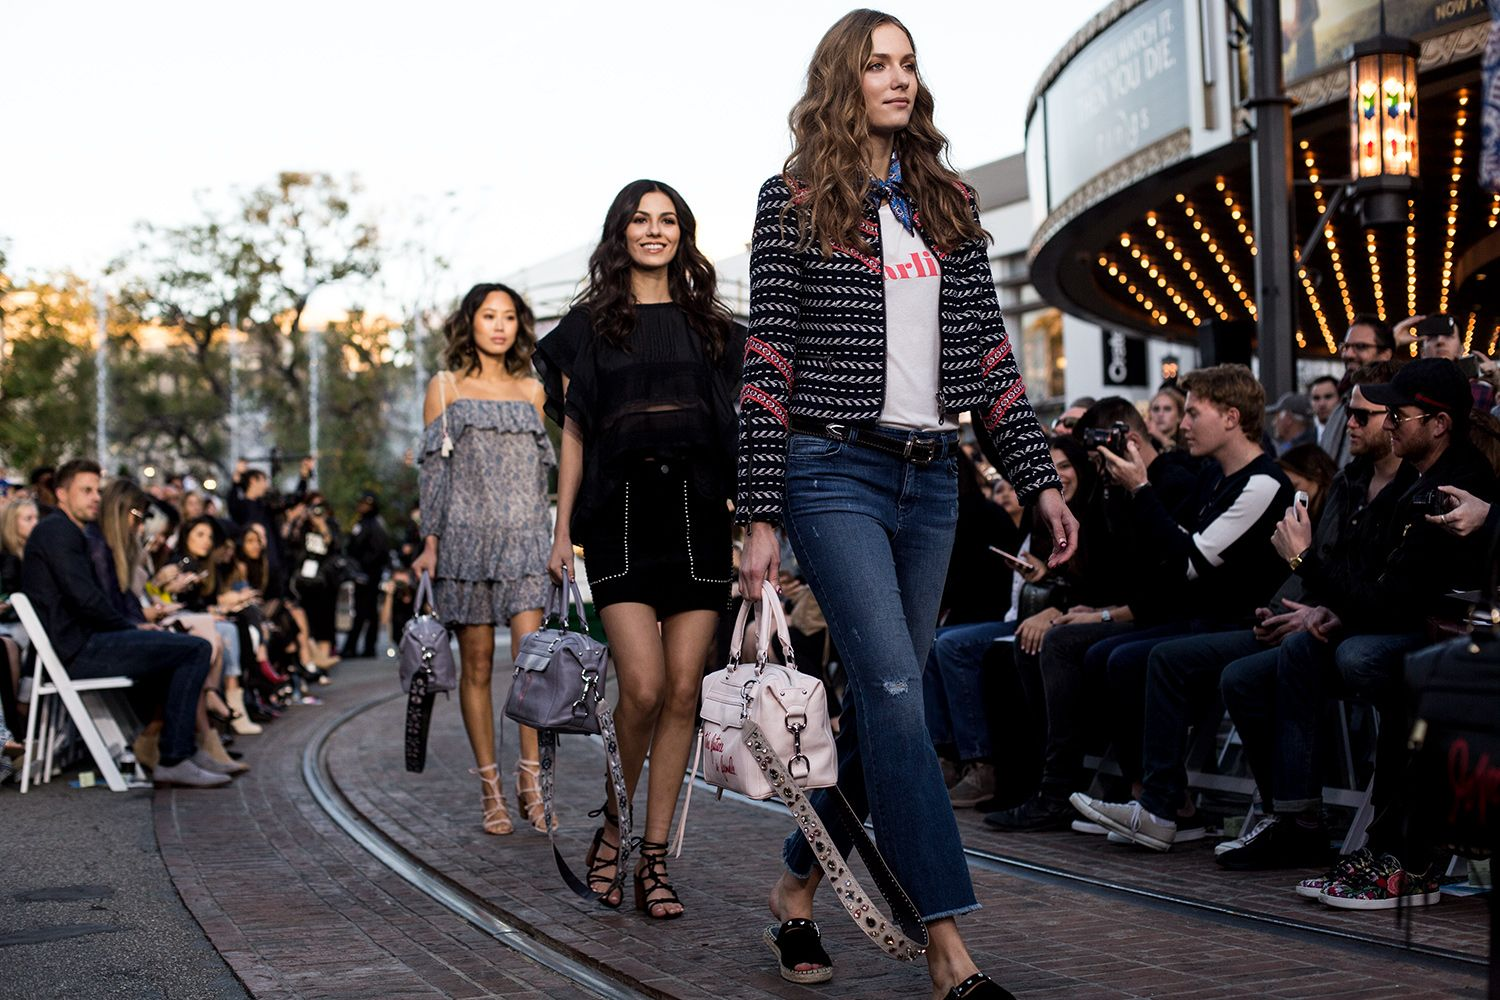 Rebecca Minkoff's 2017 Spring Collection on the LA Runway   http://www.mywhitet.com/fashion-week-rebecca-minkoffs-spring-2017-la-runway-show/